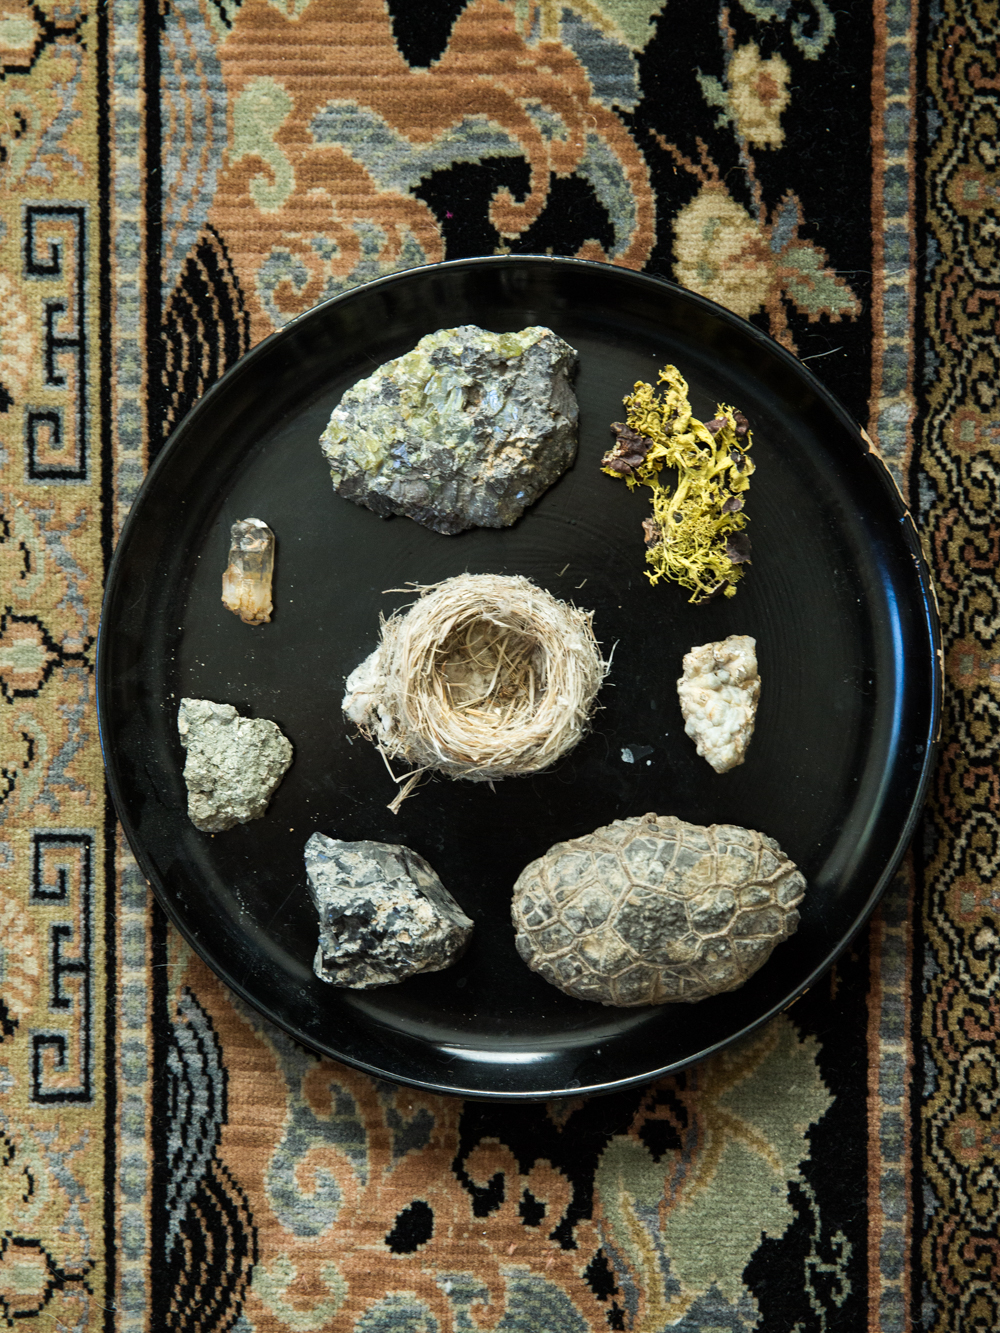 """I've always been interested in rocks. I like speculating about how they got to be how they are."" -Jane Rybus"